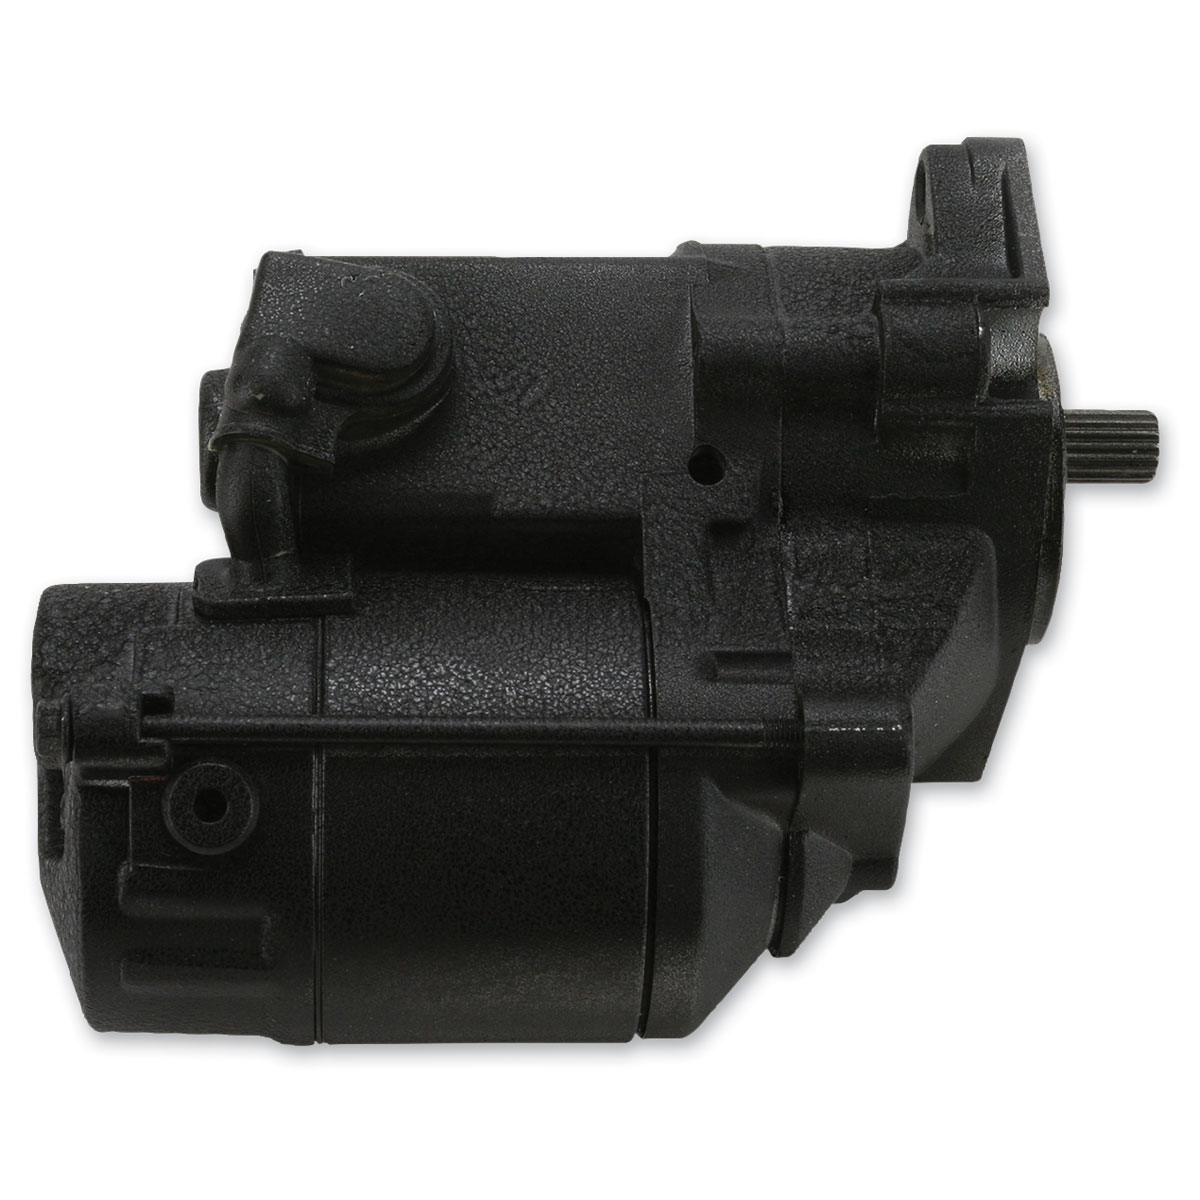 Terry Components 1.2 kW Starter Motor Black